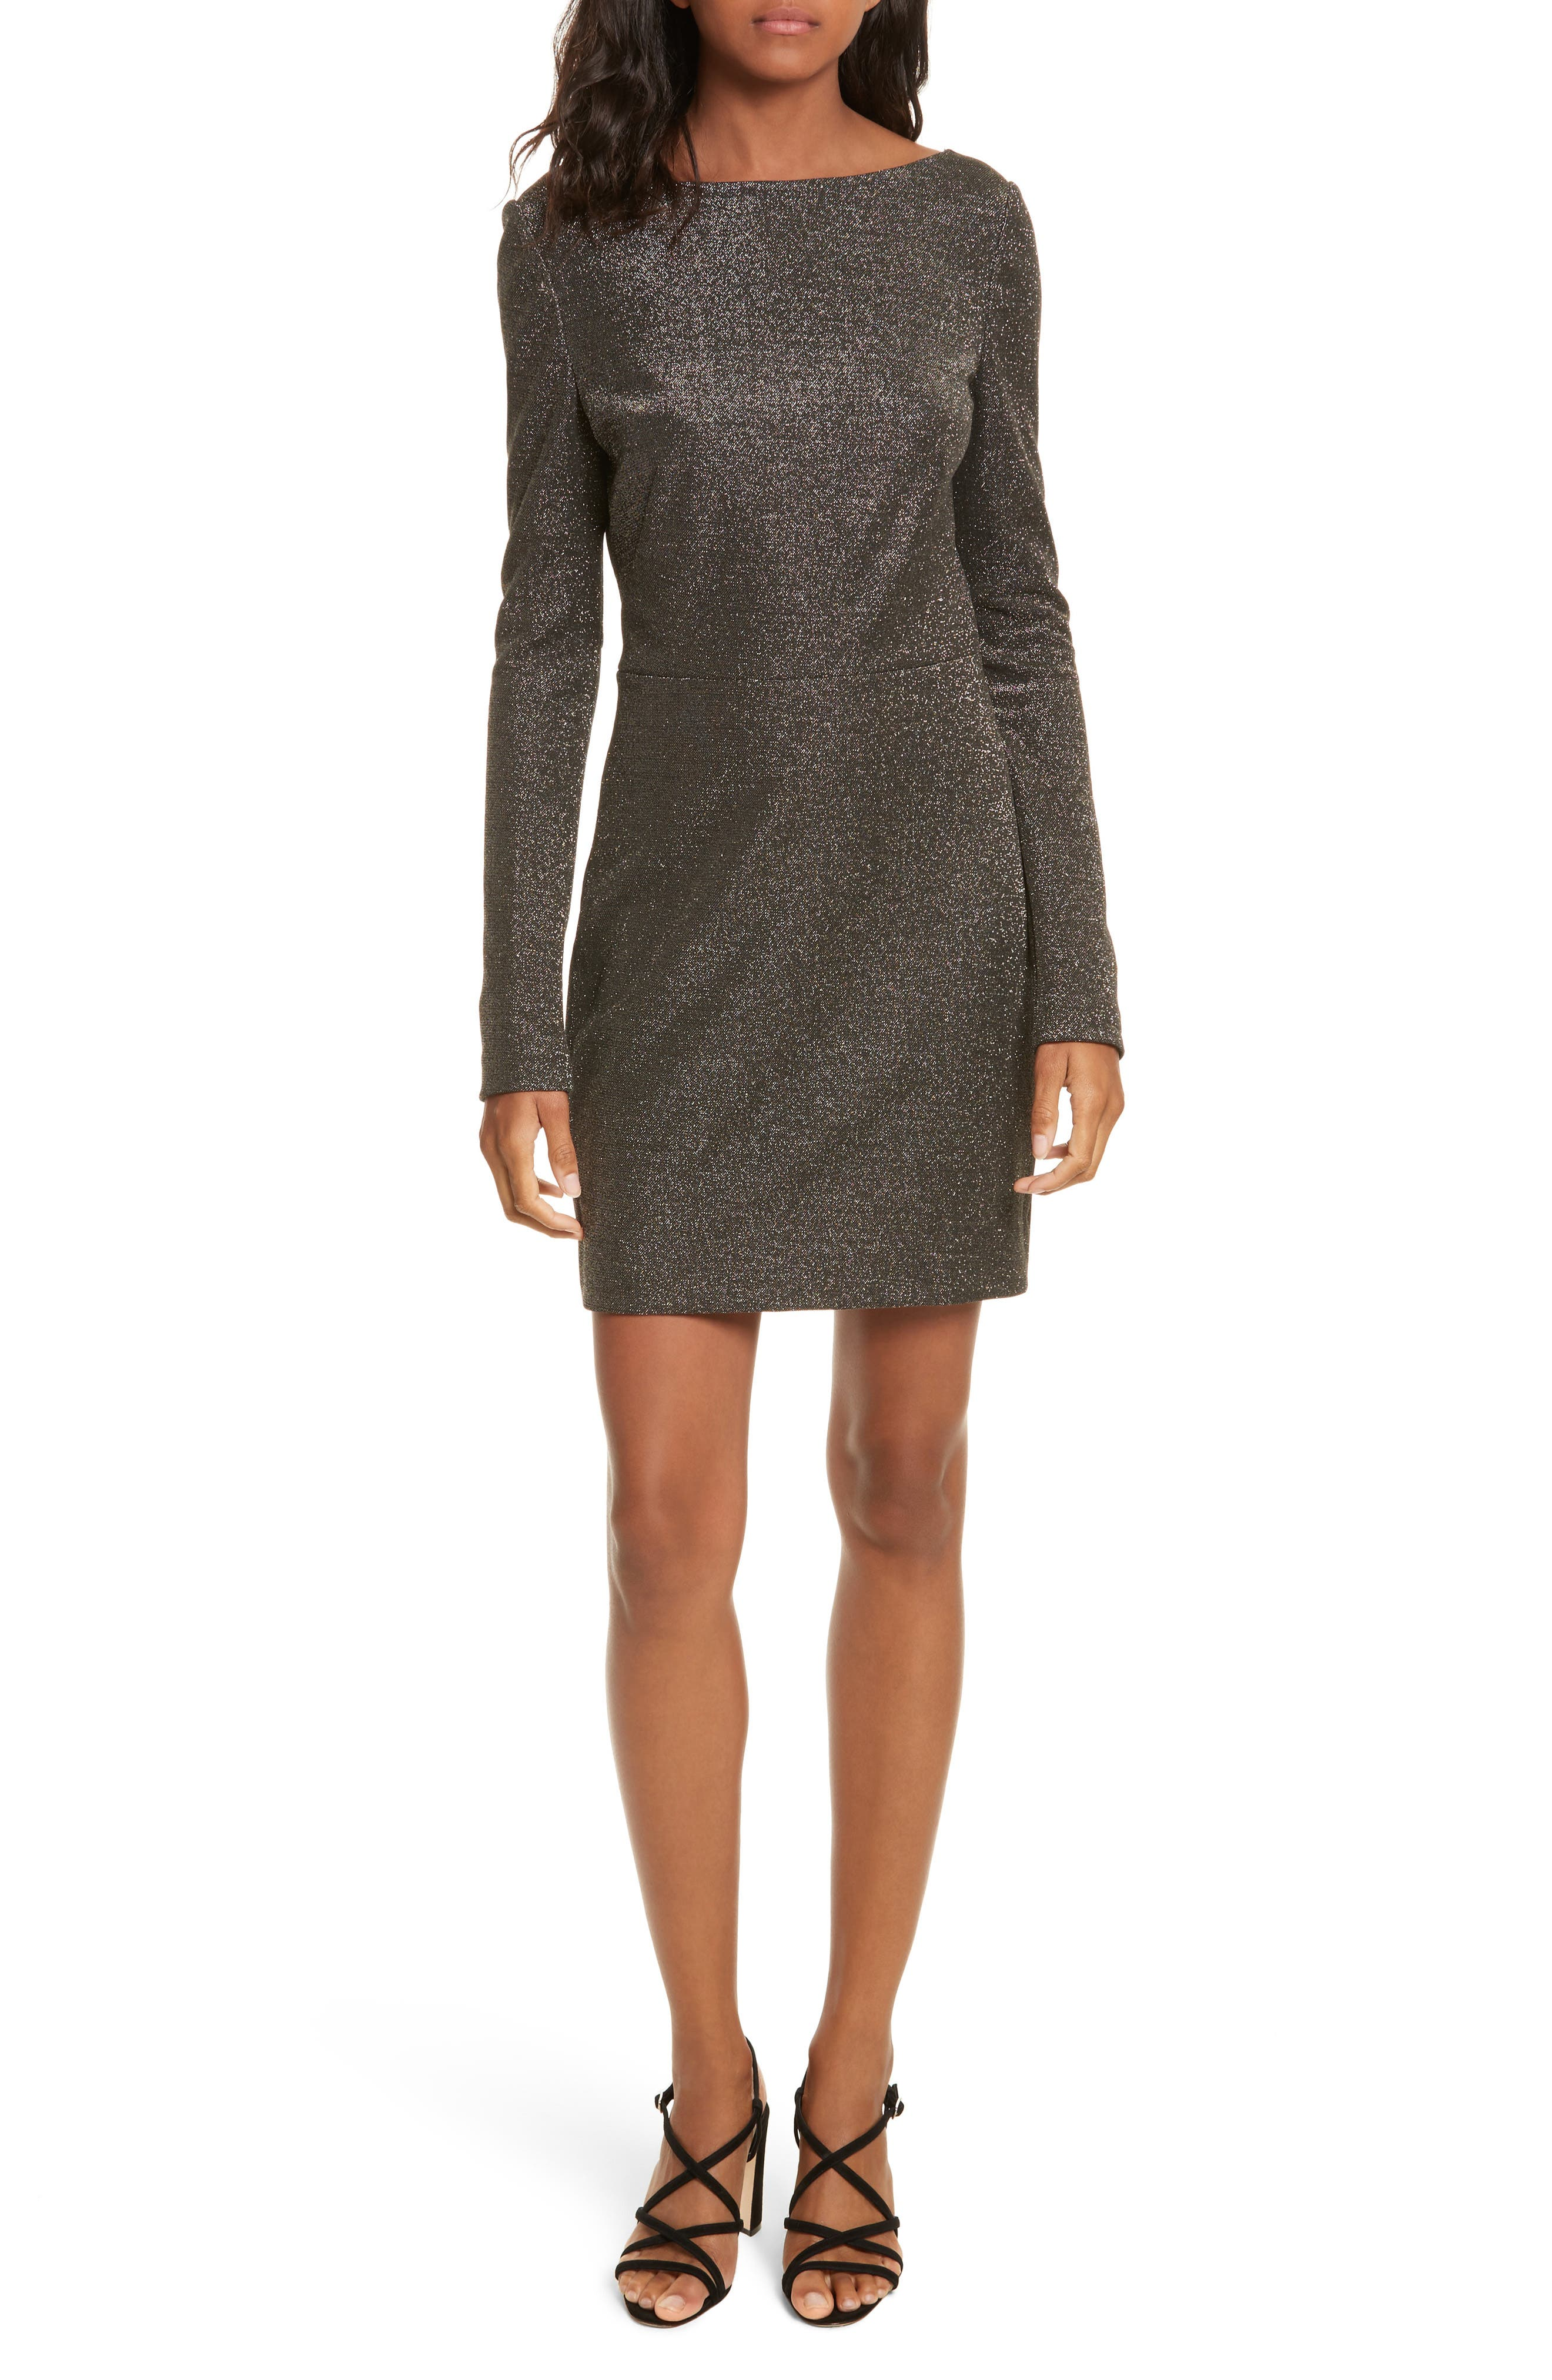 Diane von Furstenberg Sparkle Sheath Minidress,                             Main thumbnail 1, color,                             Black